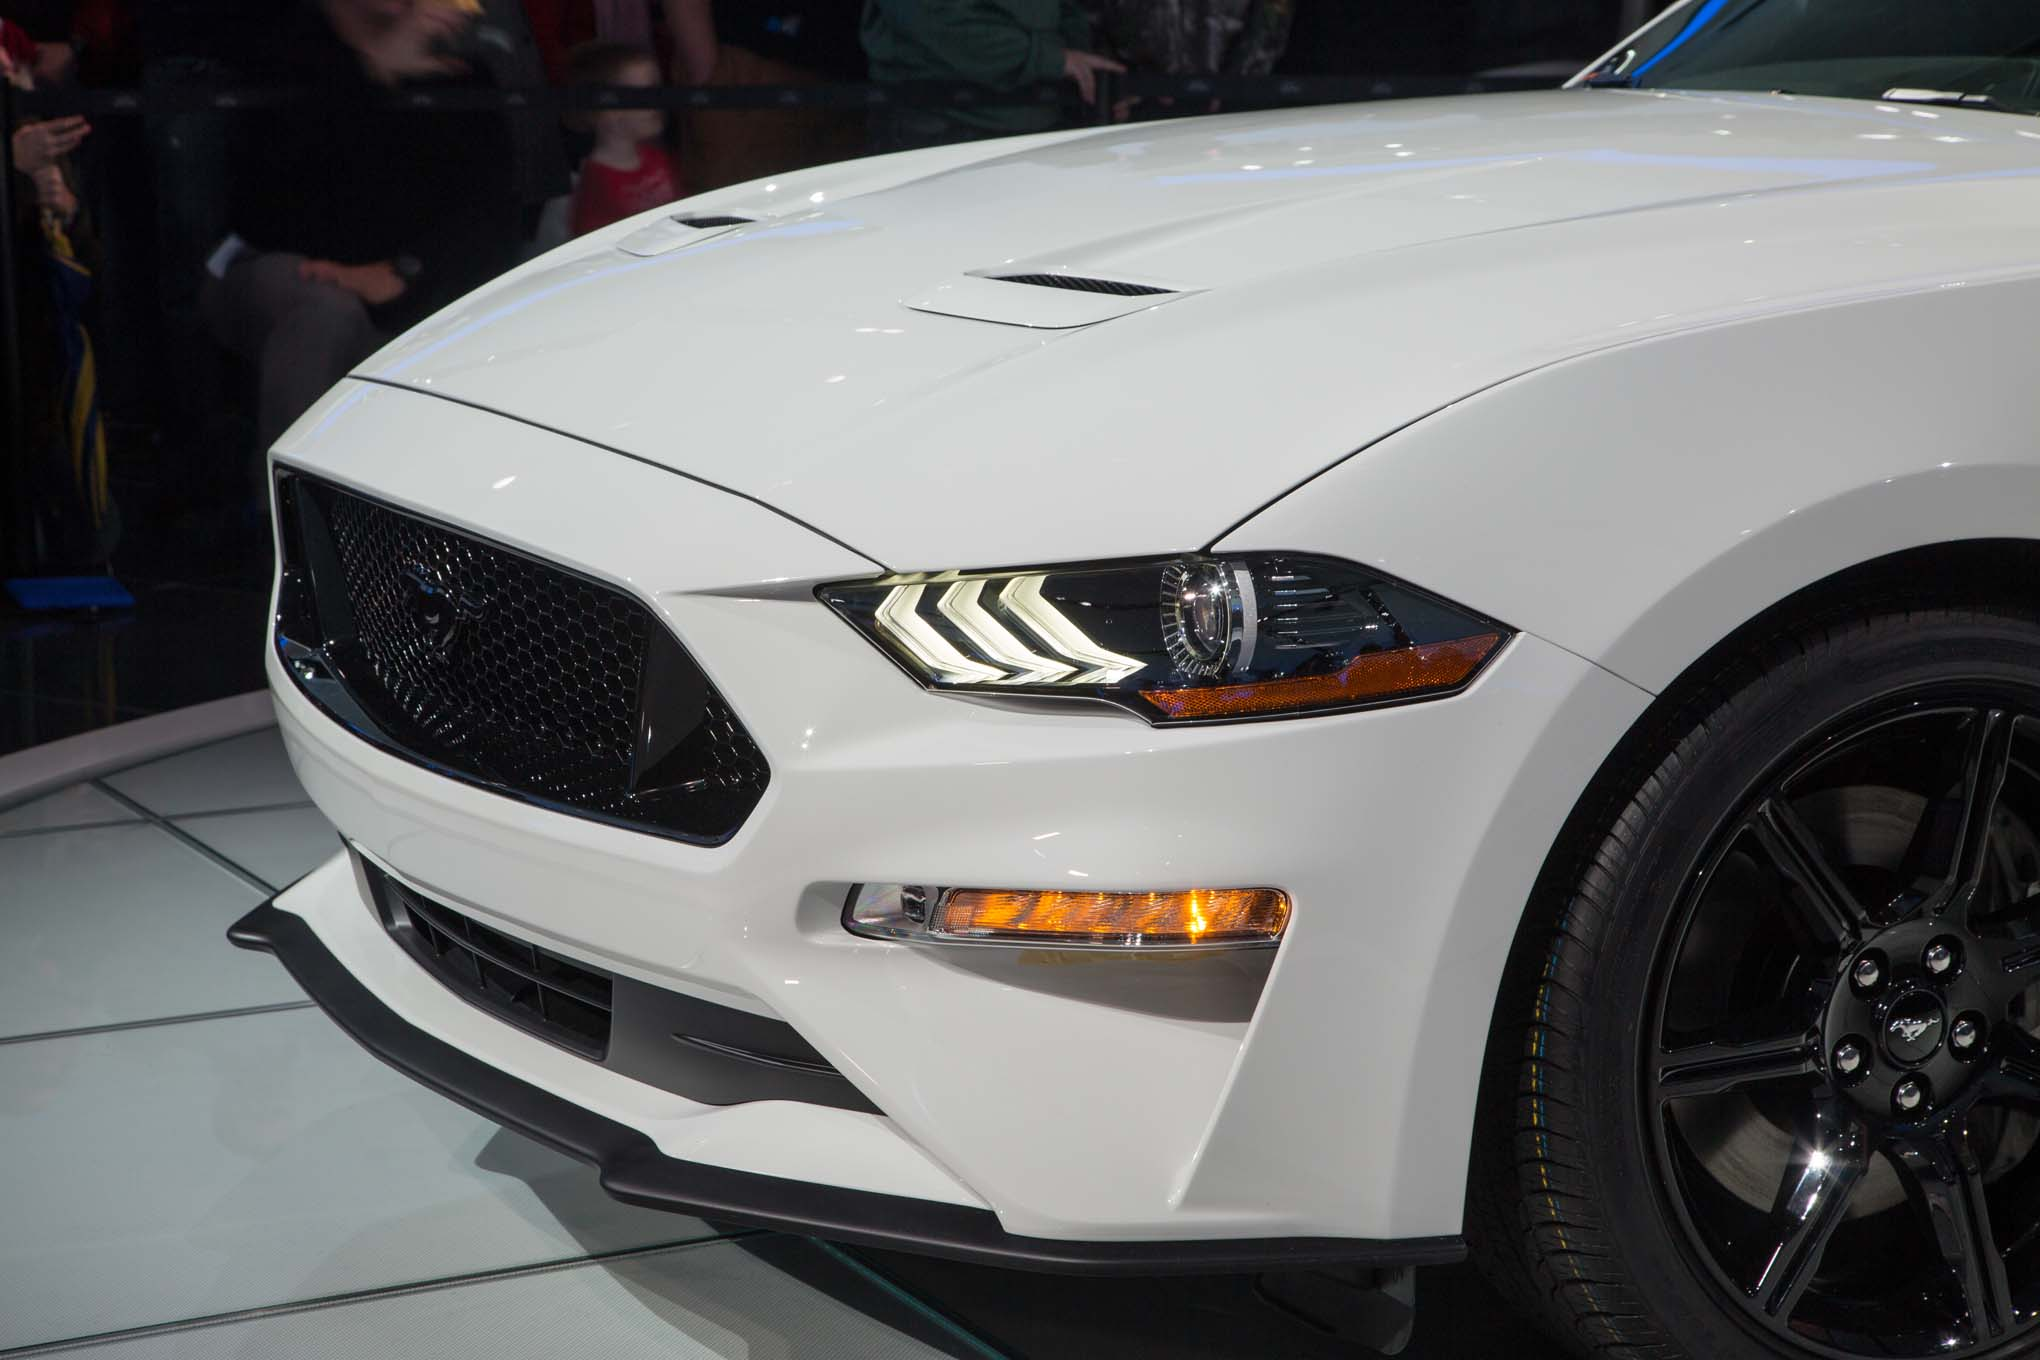 2018-Ford-Mustang-GT-front-quarter-panel